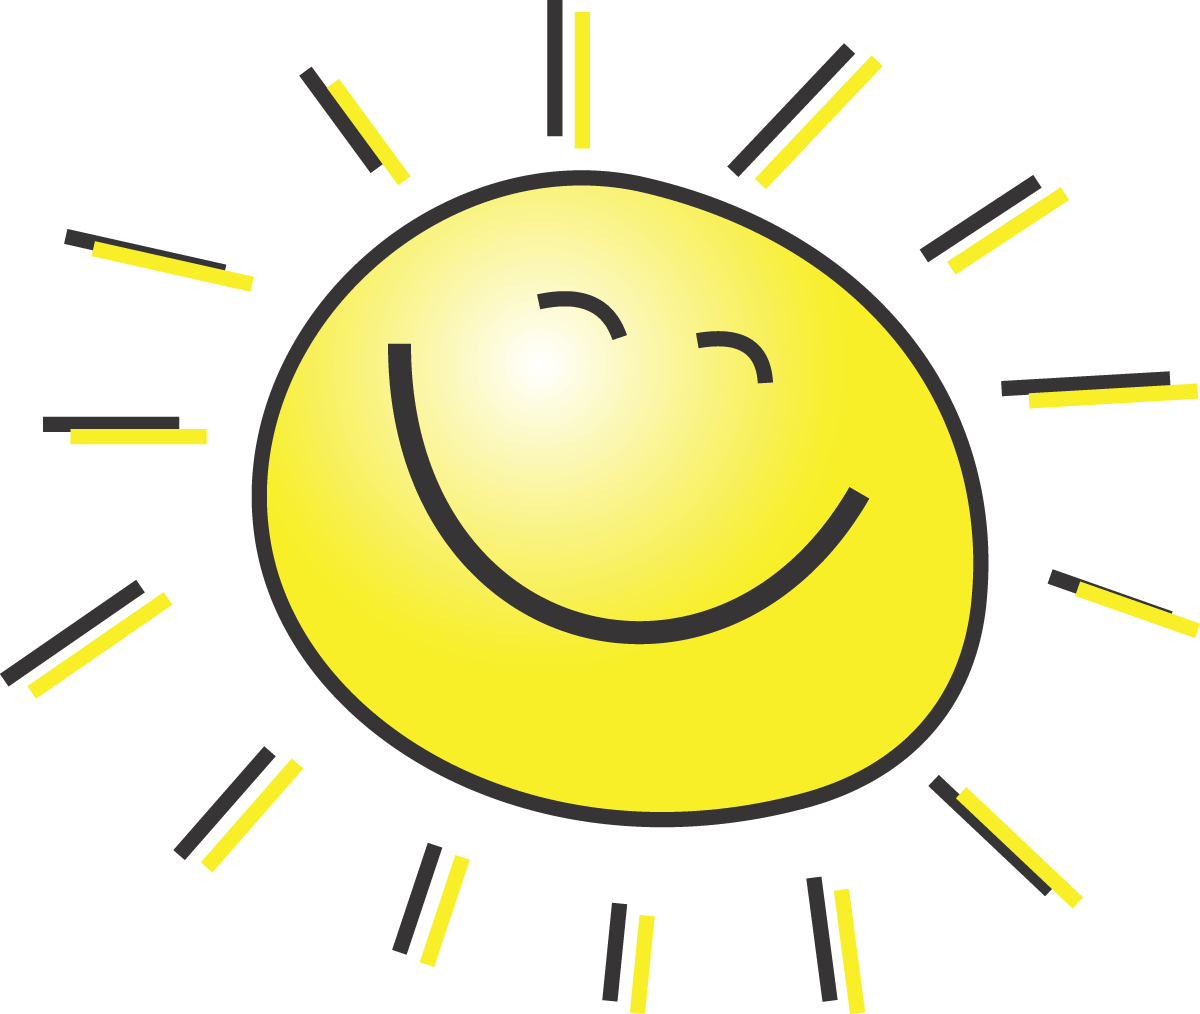 Clipart smiling sun vector transparent stock 5-Free-Summer-Clipart-Illustration-Of-A-Happy-Smiling-Sun - Sunshine ... vector transparent stock